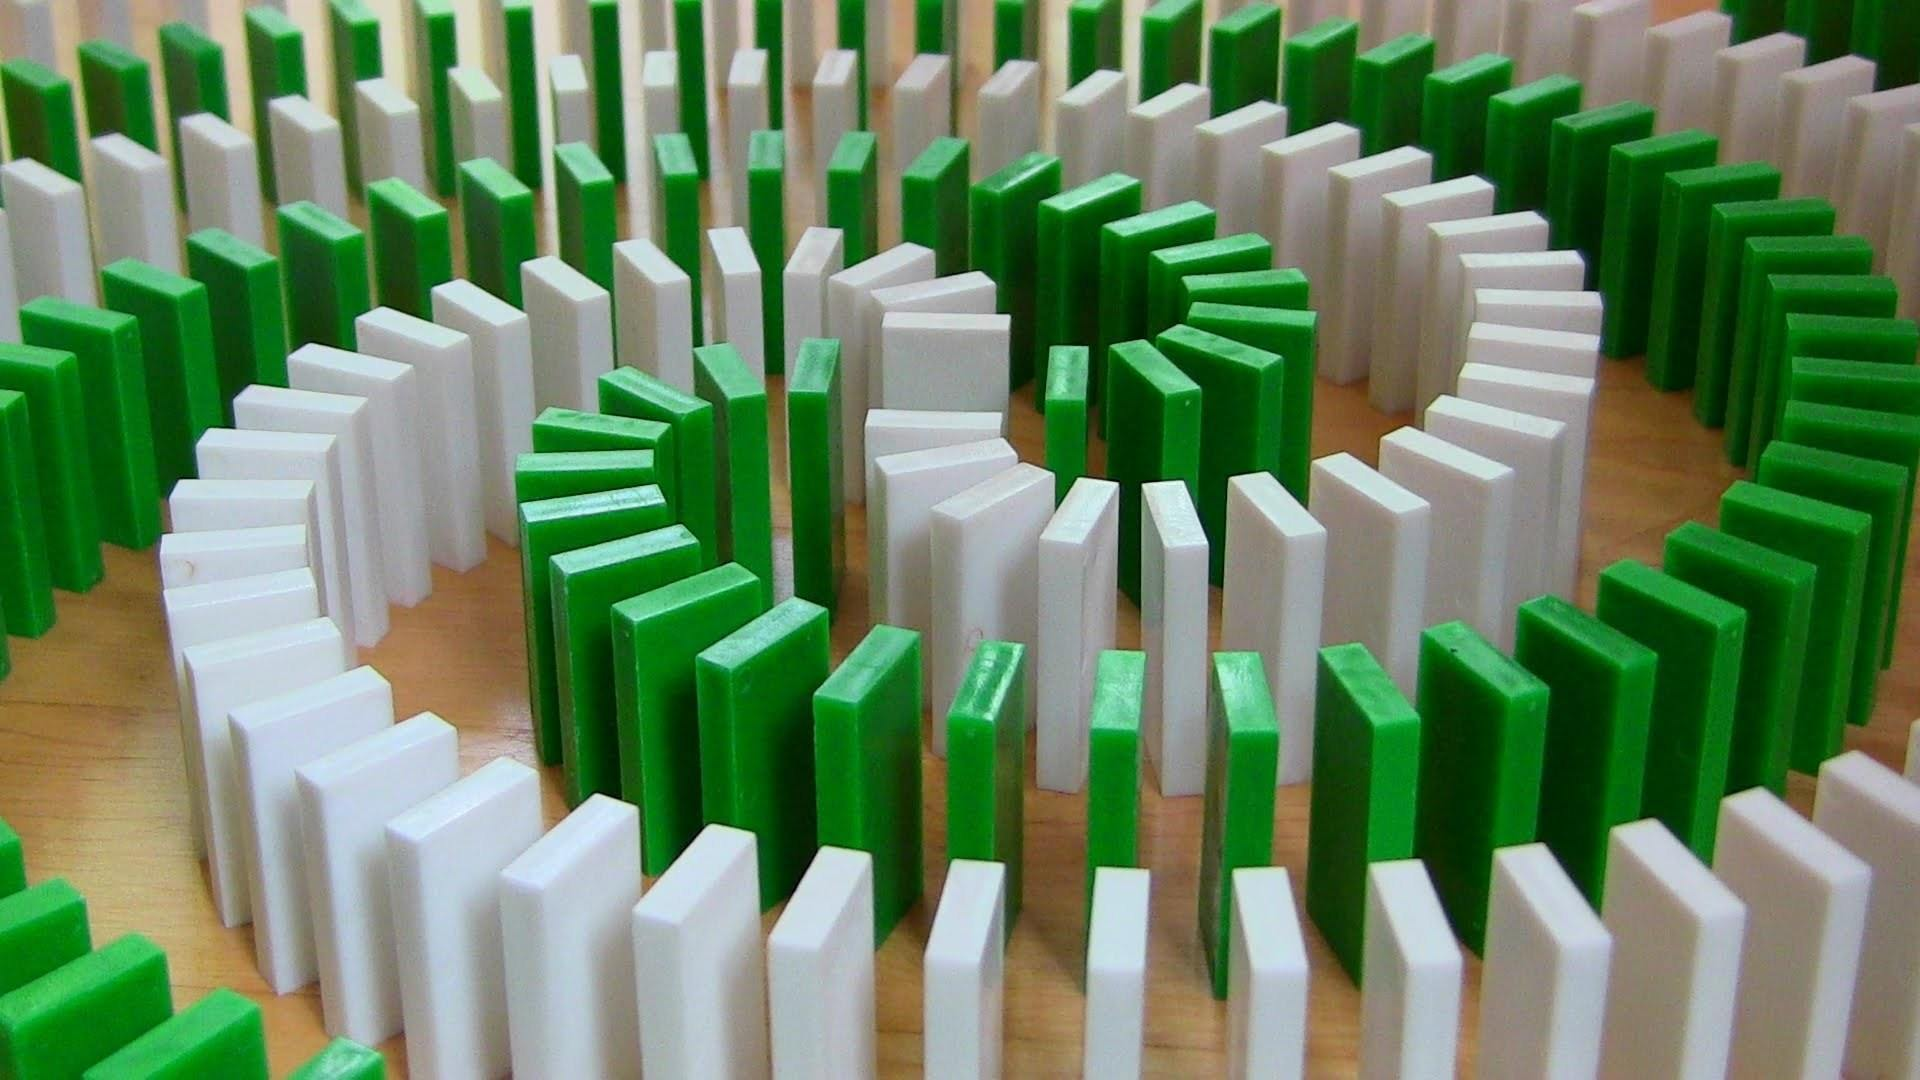 Unbelievable Domino Toppling Tricks